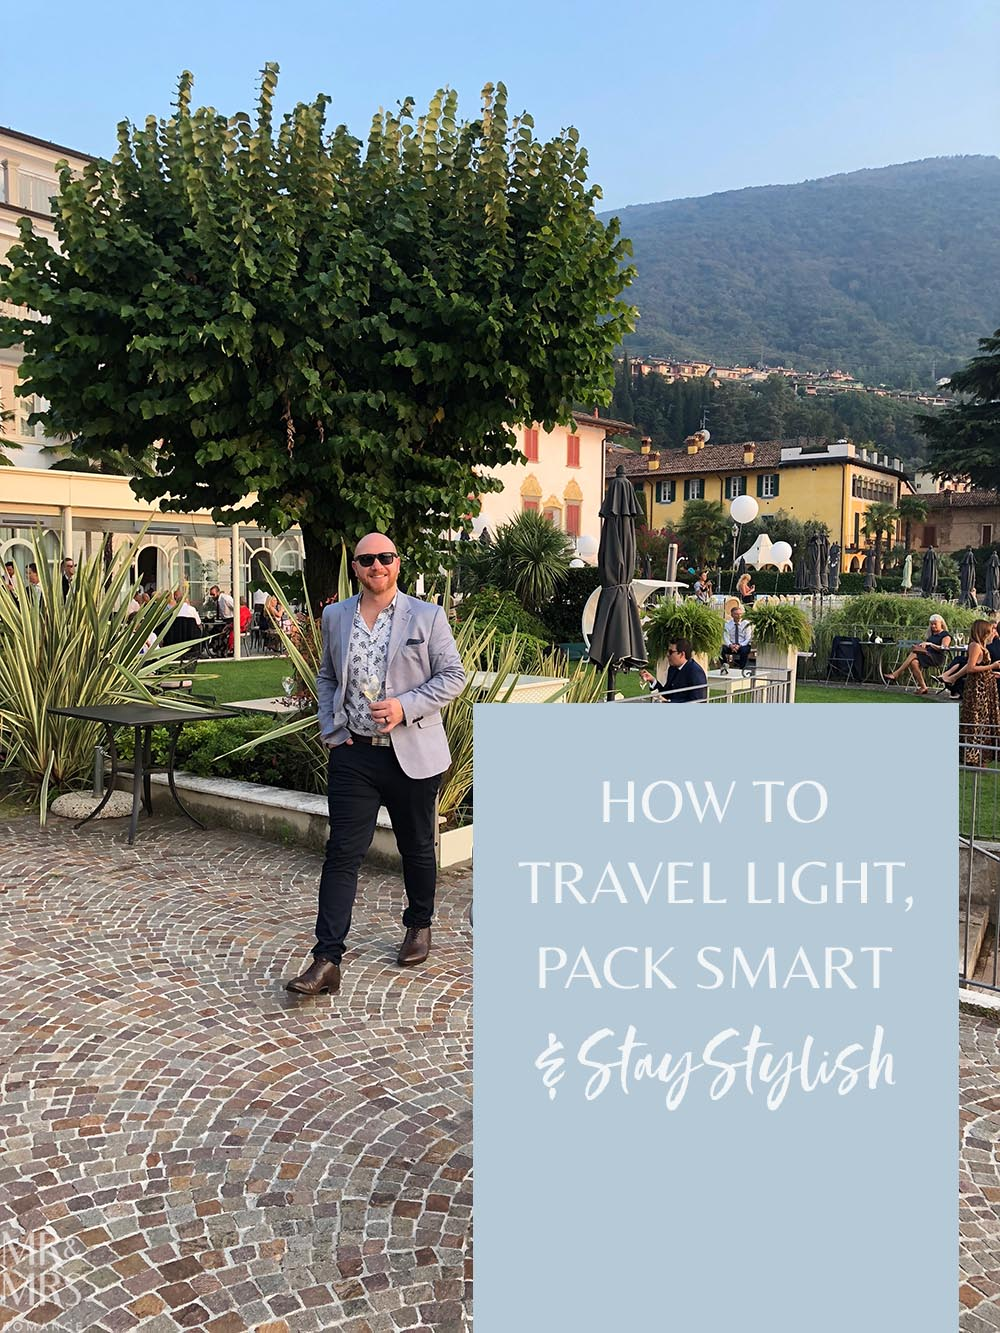 How to travel light, pack smart and stay stylish - Lake Iseo, Italy